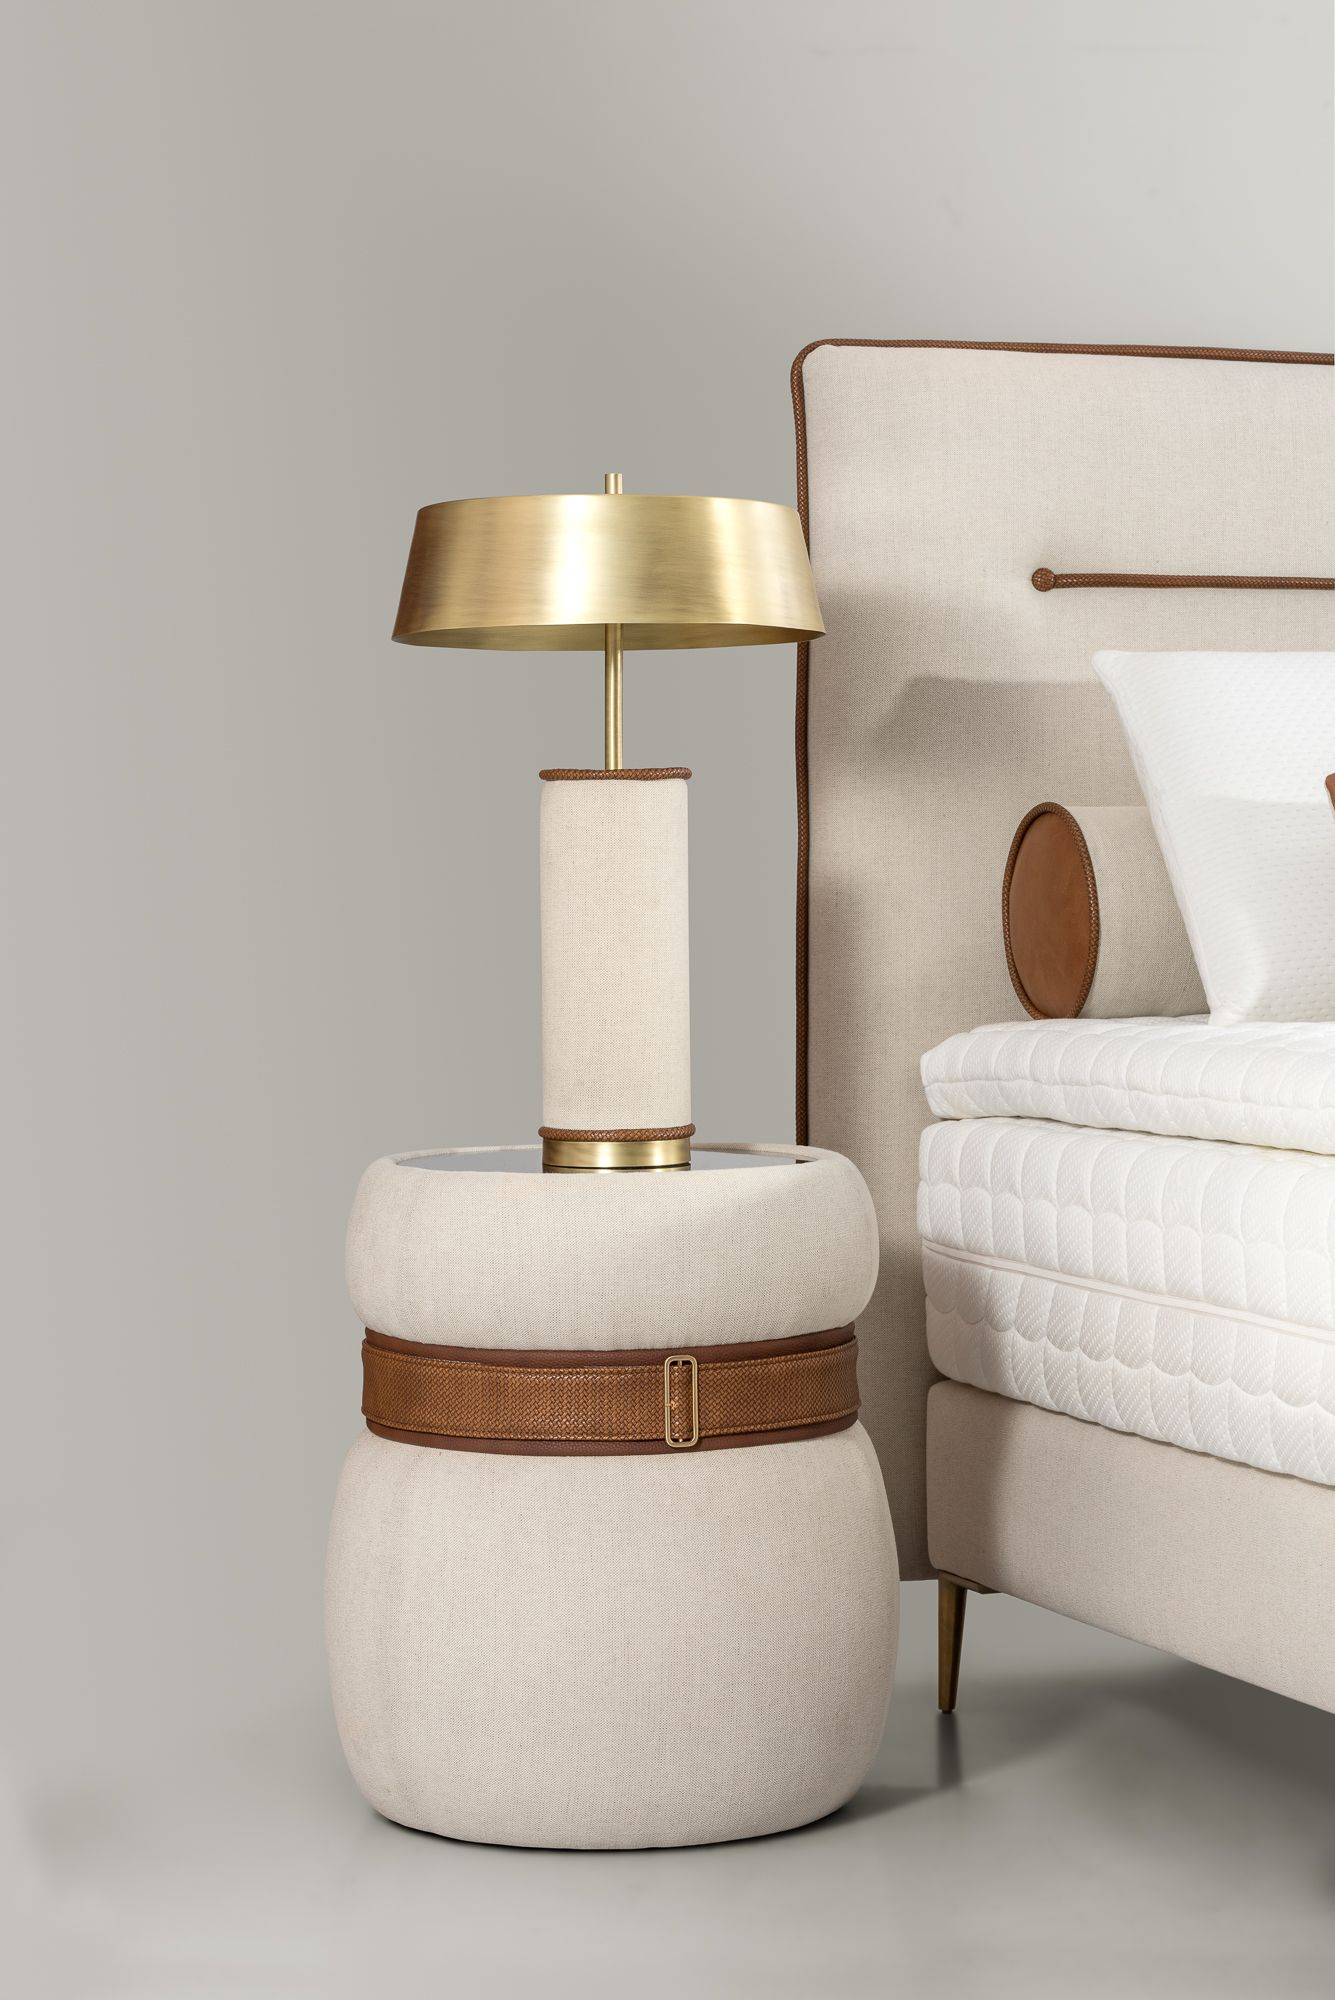 Azur Side Table And Lamp By Colunex